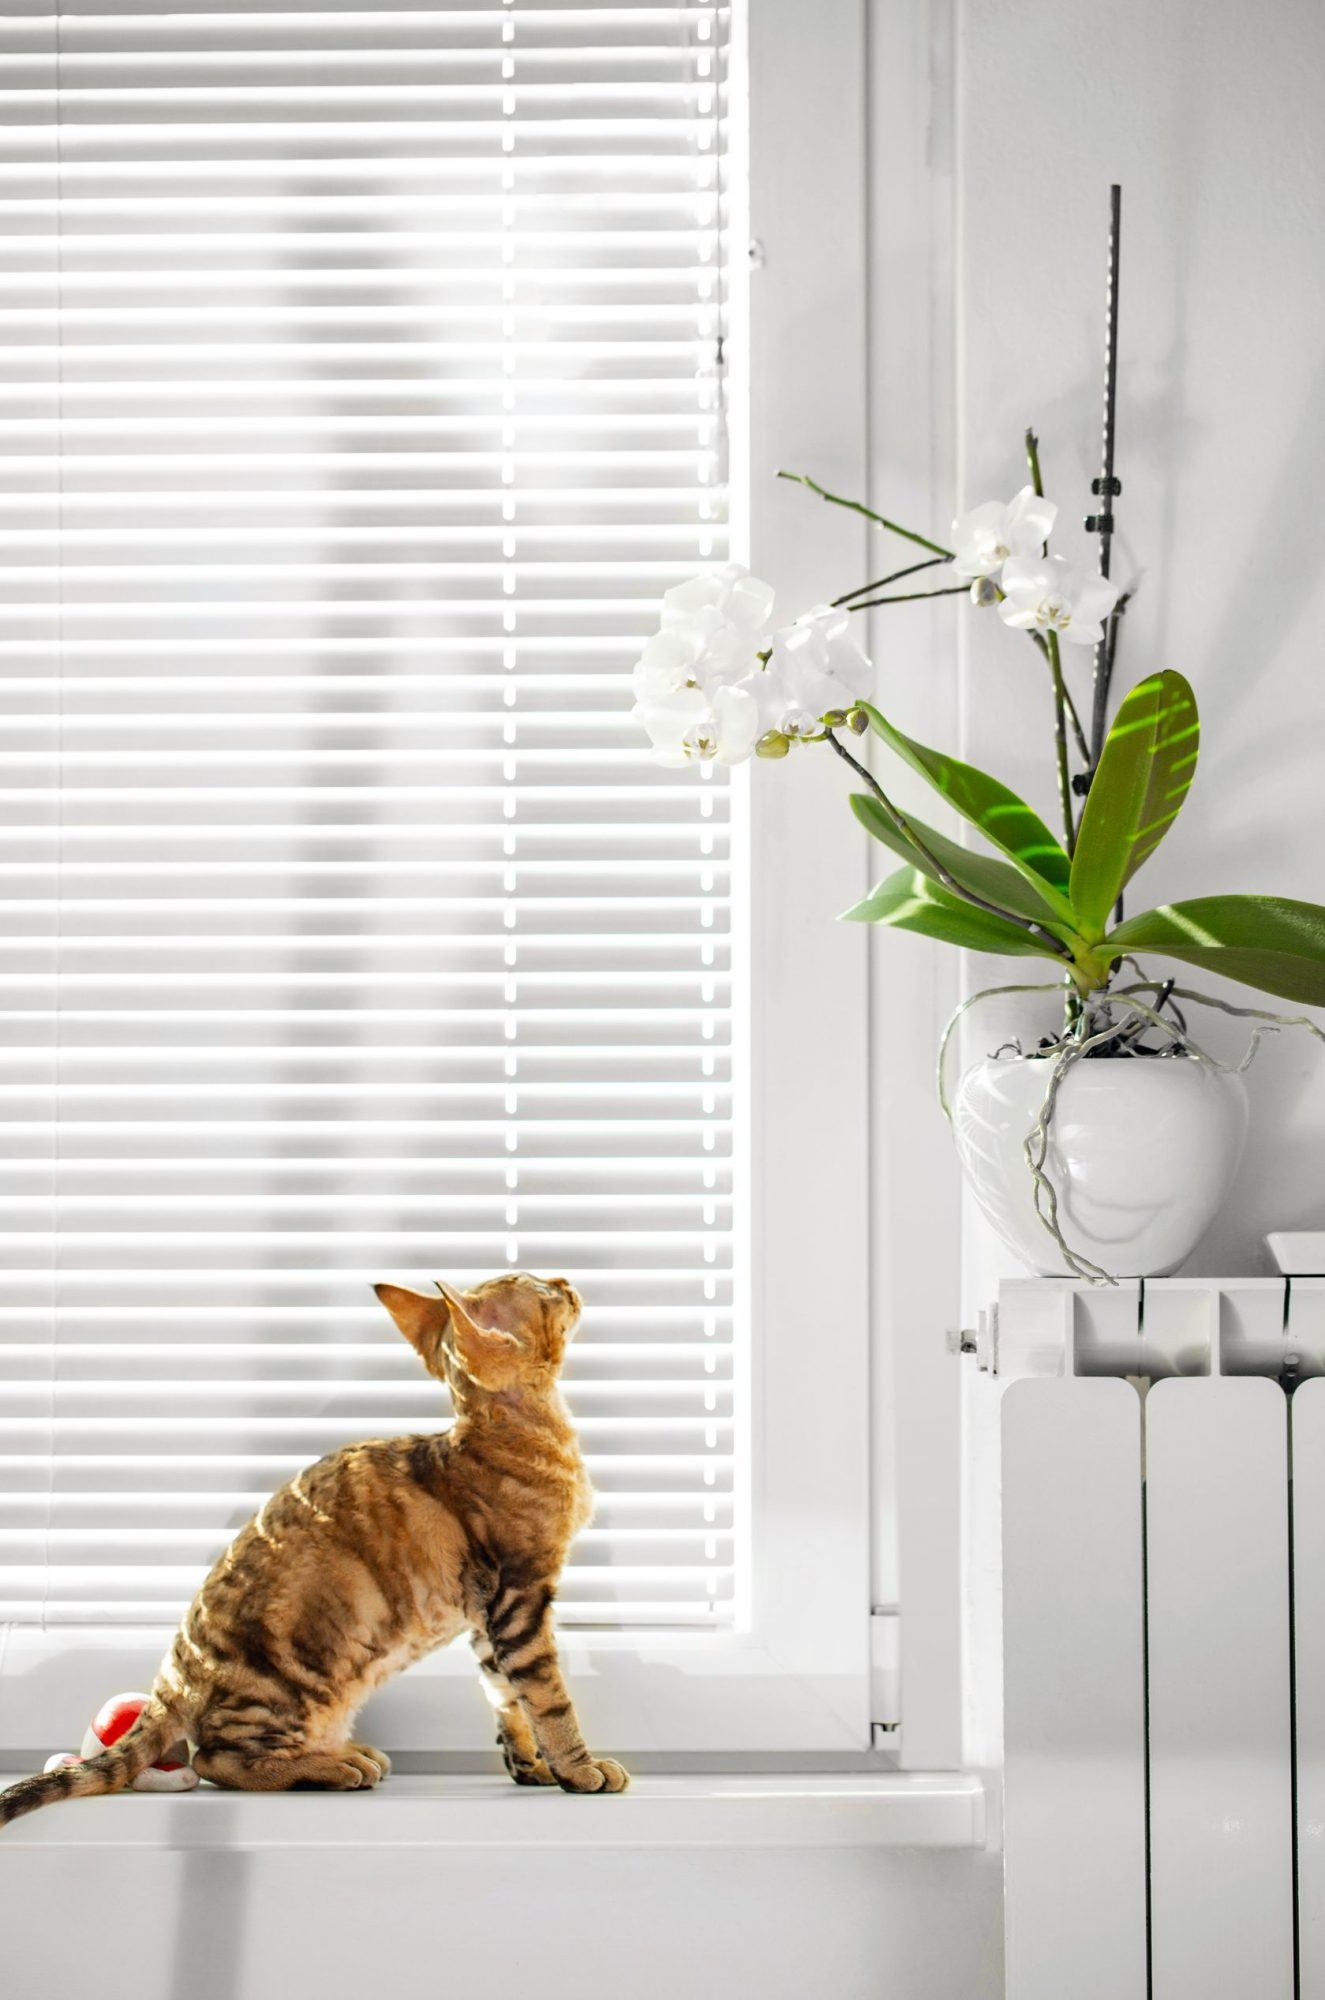 A cat looks at a houseplant.